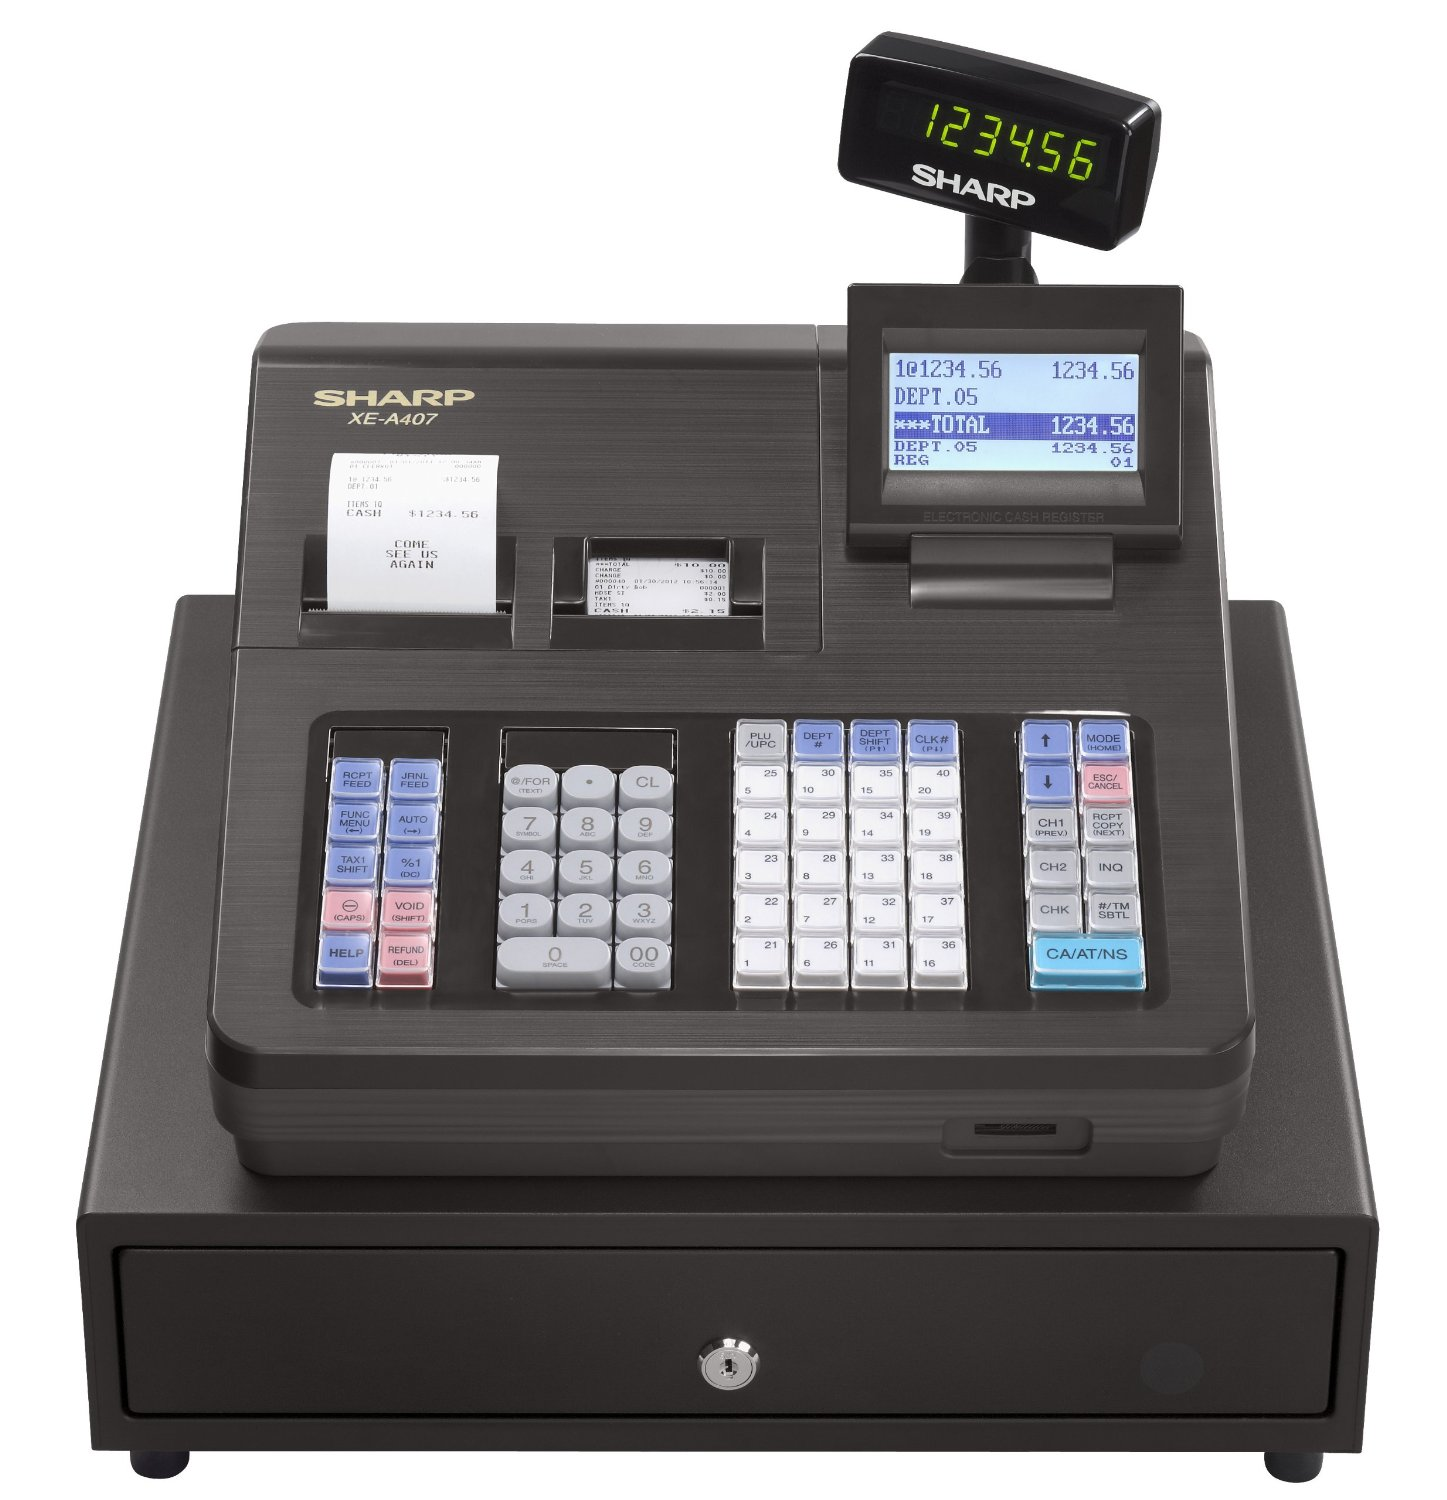 panasonic 7500 cash register manual